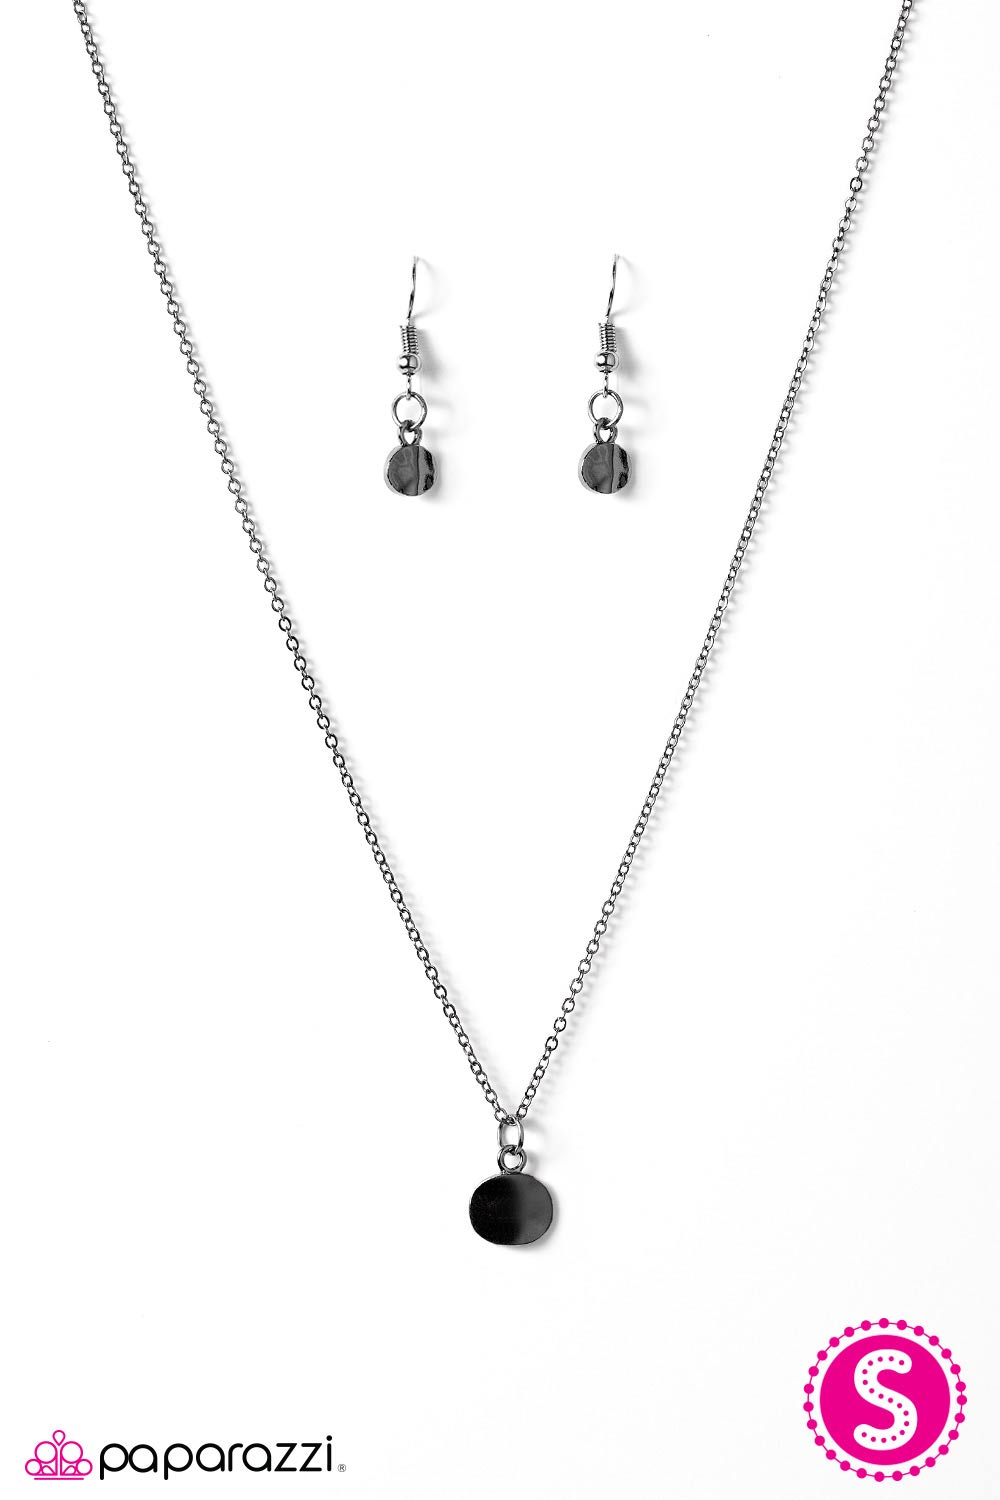 Paparazzi Inner Simplicity Black Necklace & Earrings Set